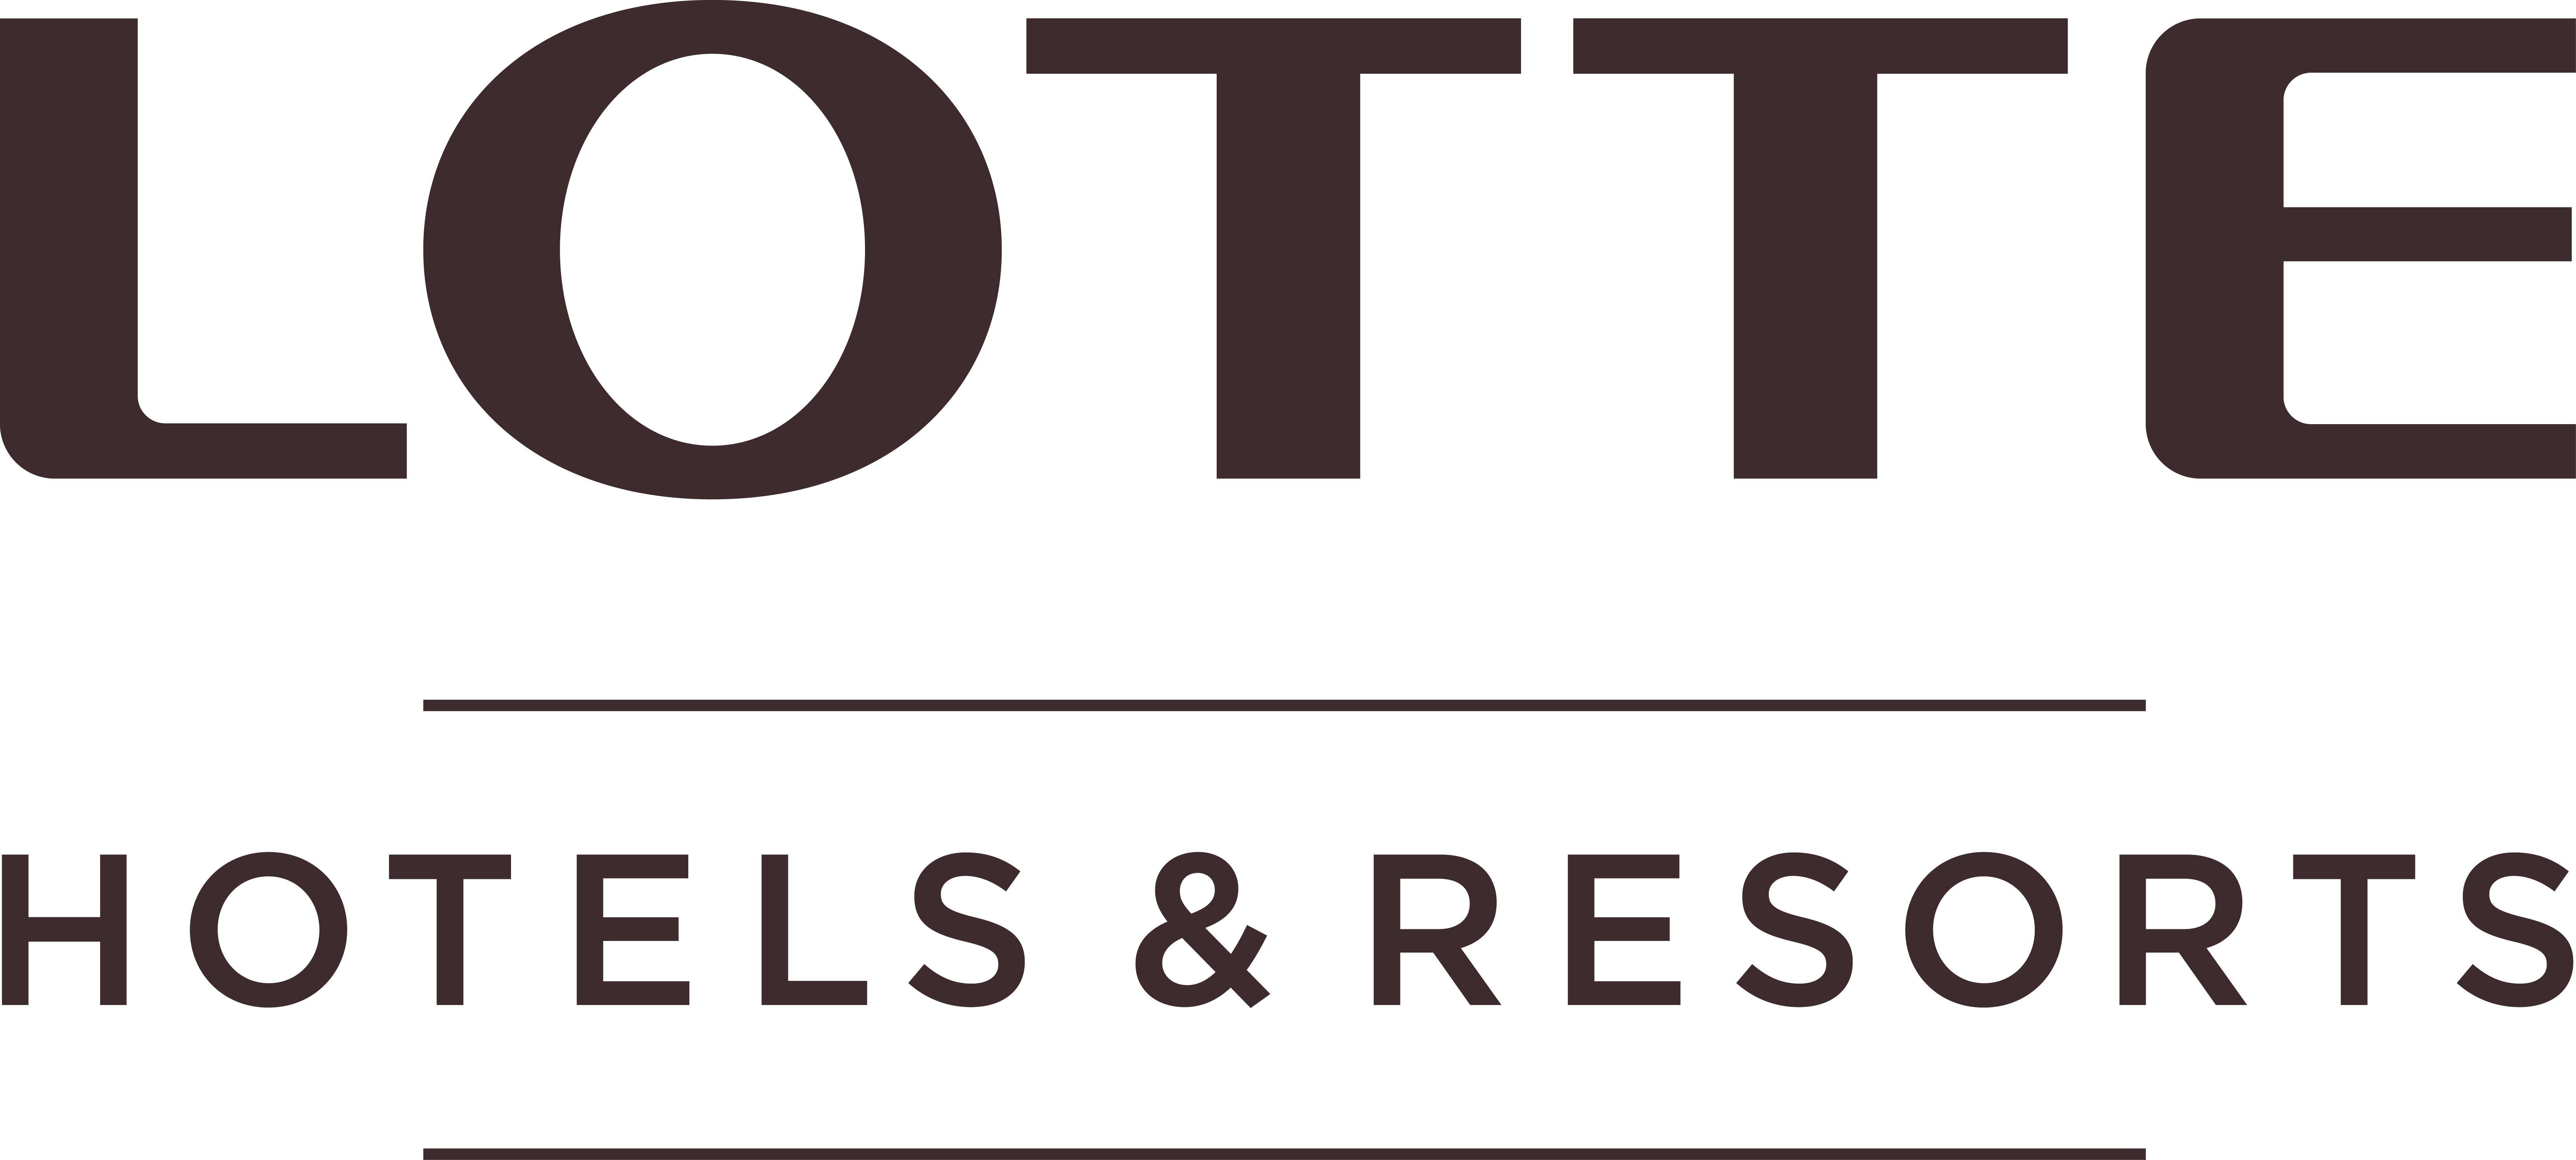 Lotte Hotels And Resorts